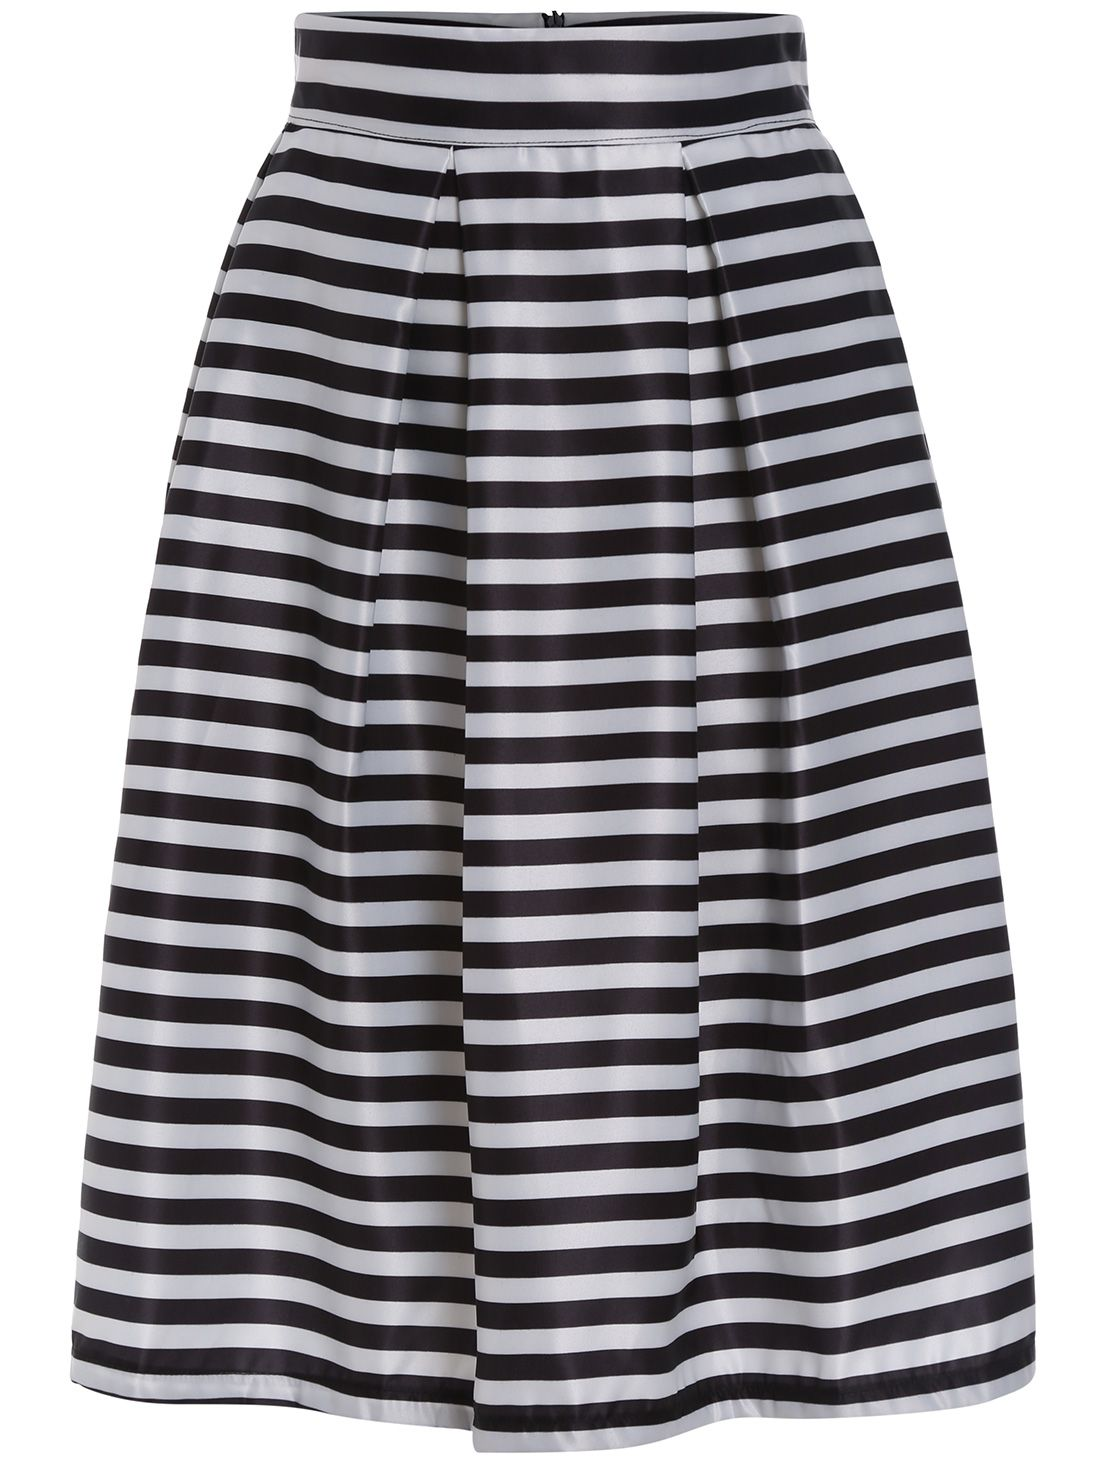 00f052c66 Shop Black White High Waist Striped Flare Skirt online. SheIn offers Black  White High Waist Striped Flare Skirt & more to fit your fashionable needs.